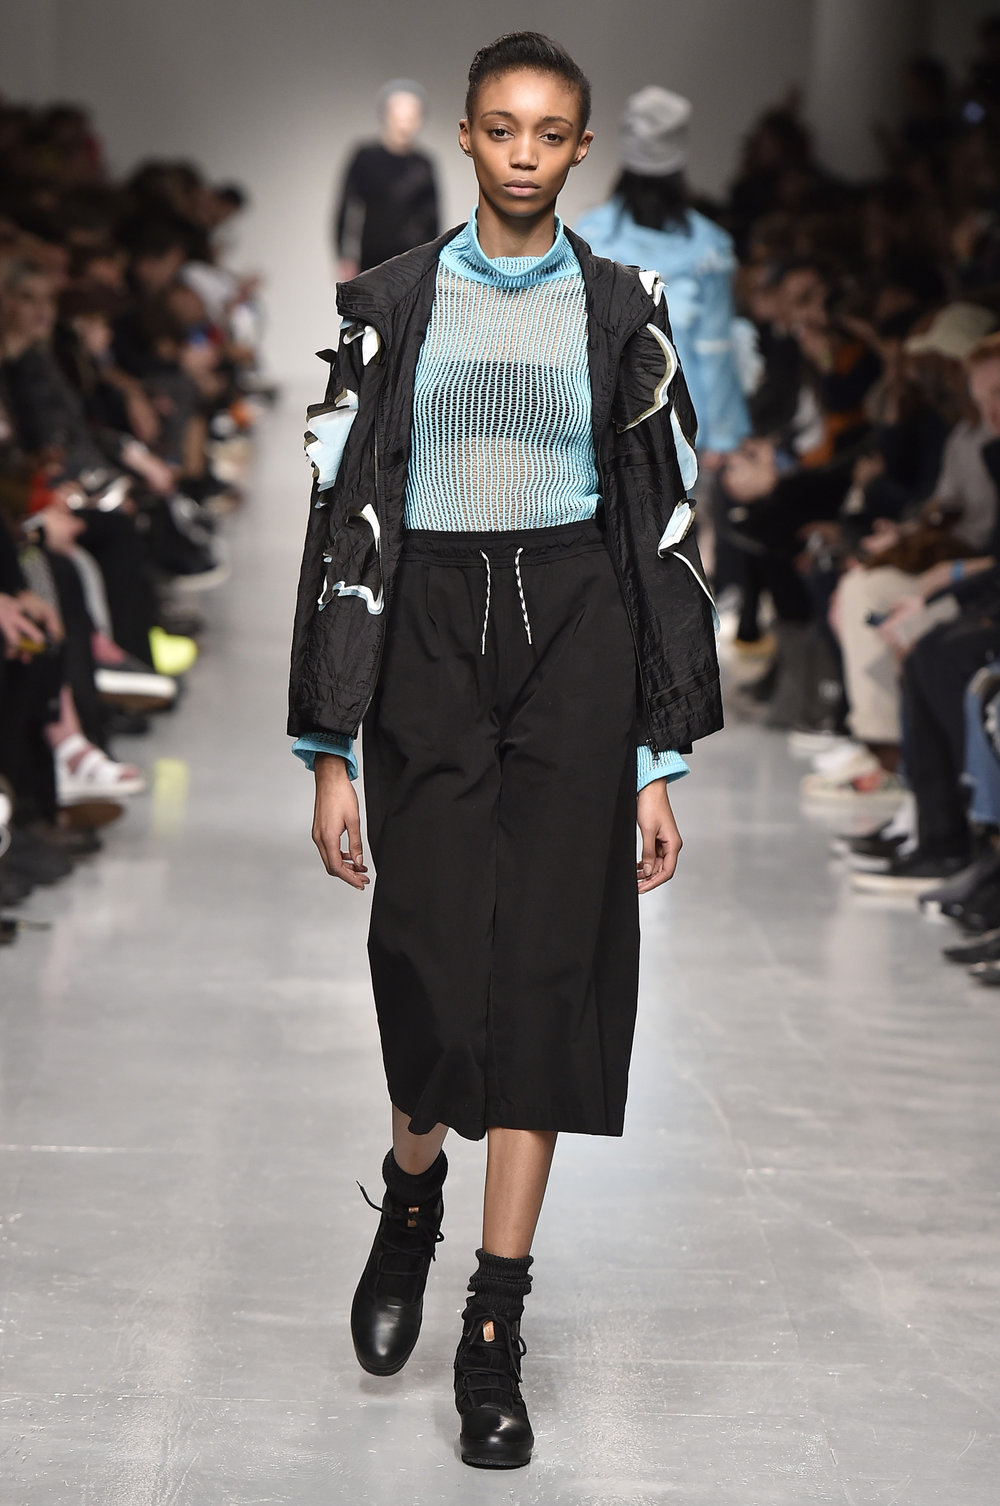 Christopher Raeburn Look 12.jpg